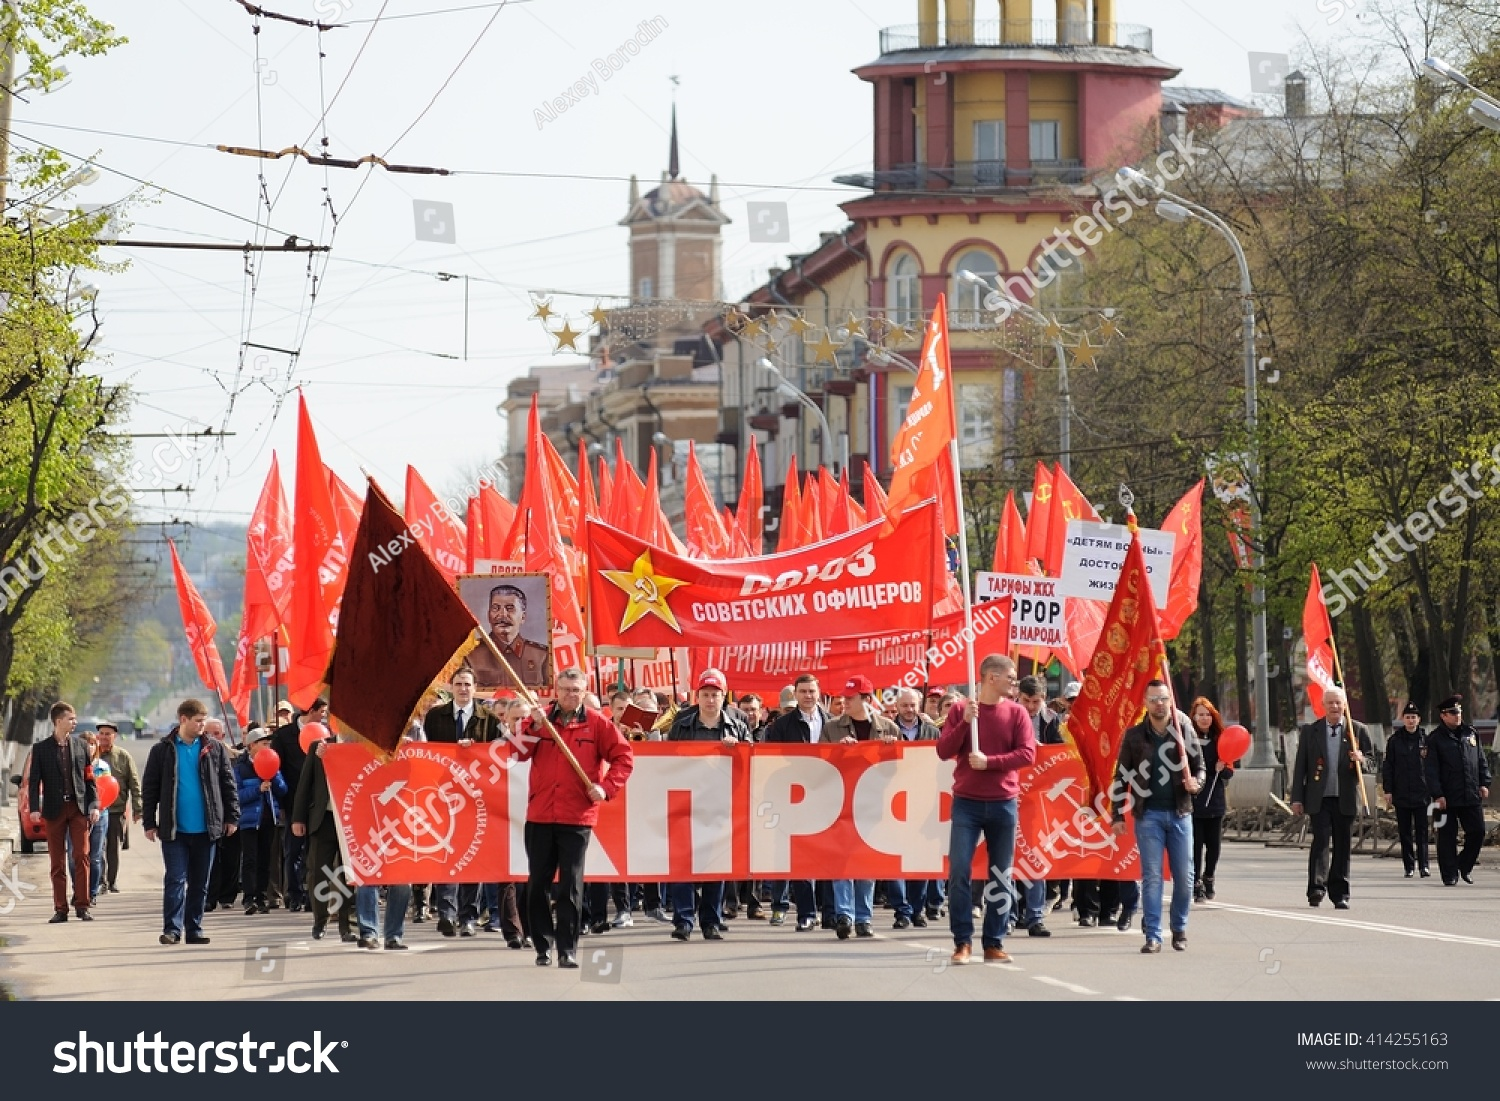 Orel, Russia - May 1, 2016: Communist party demonstration. People marching with red flags on empty street